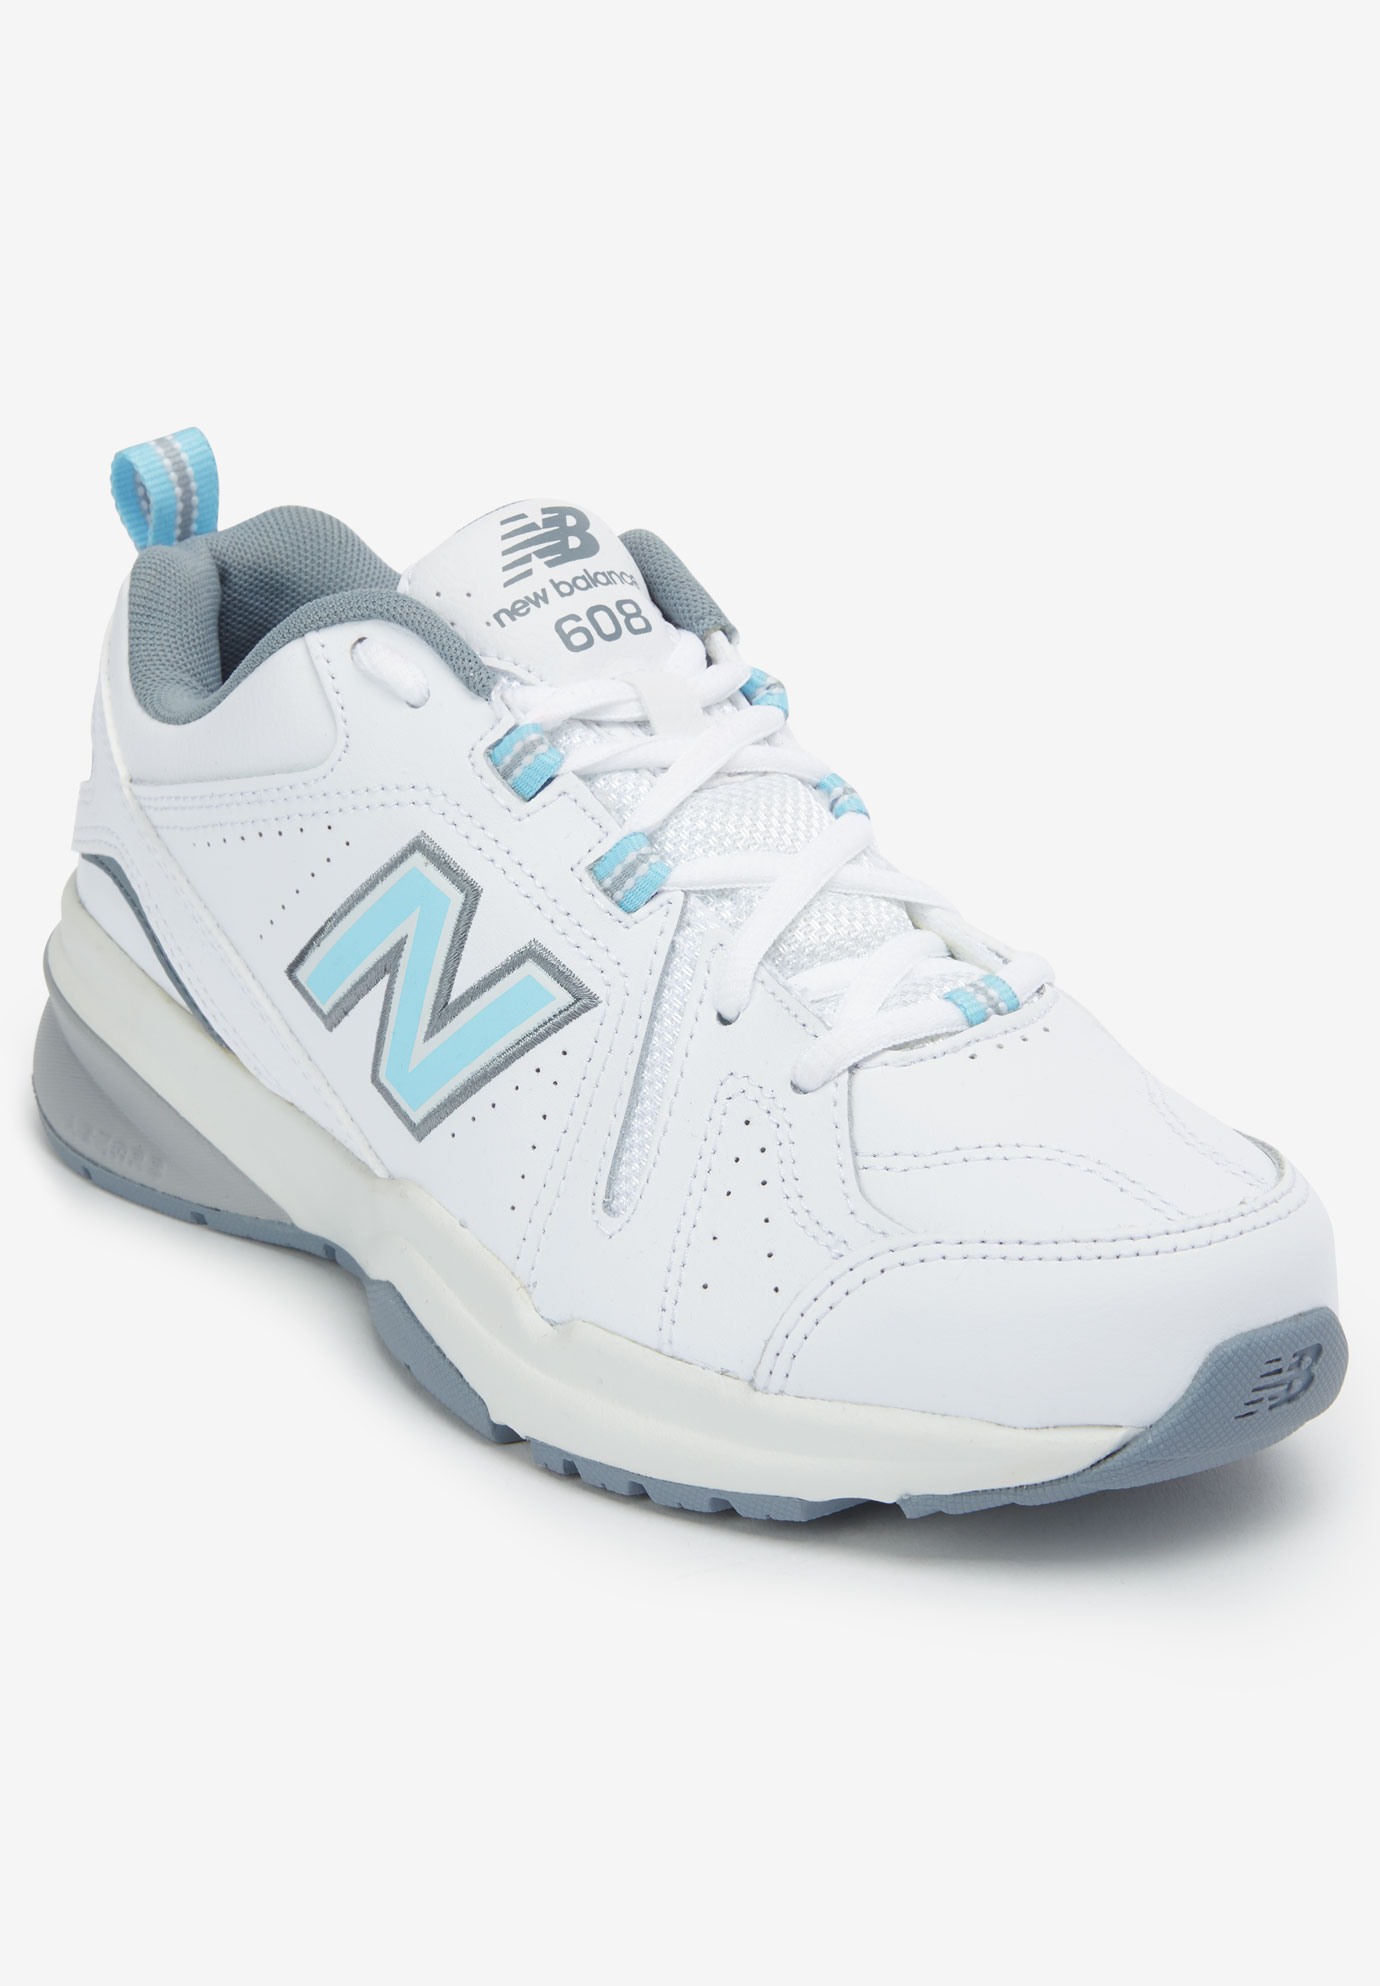 The WX608 Sneaker by New Balance®,